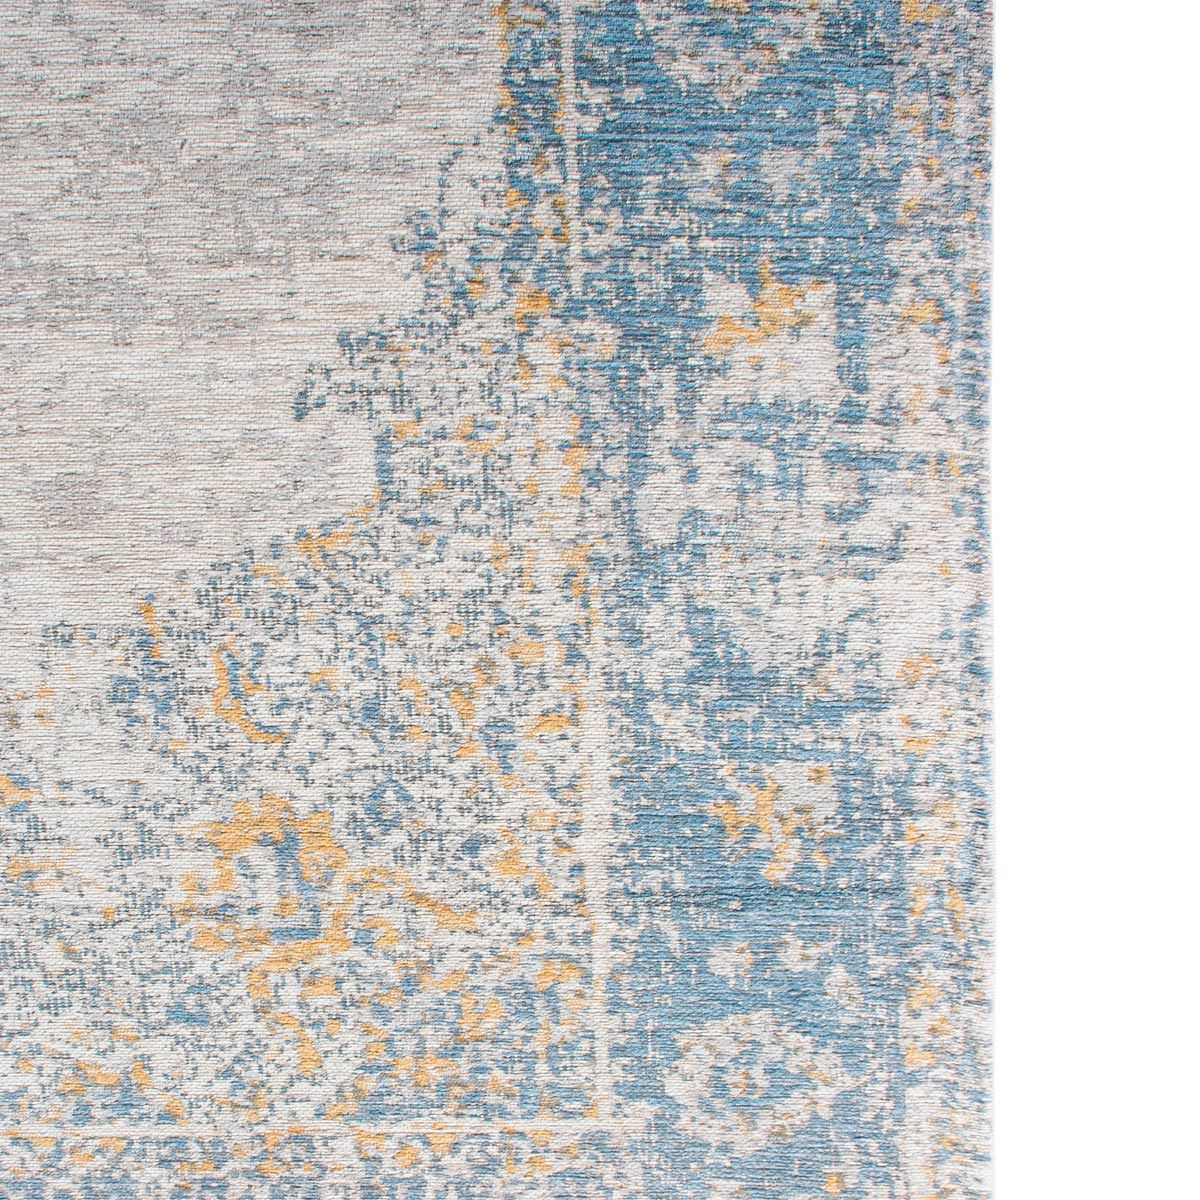 Marseille Rug 34 Blue/Beige/Yellow 7